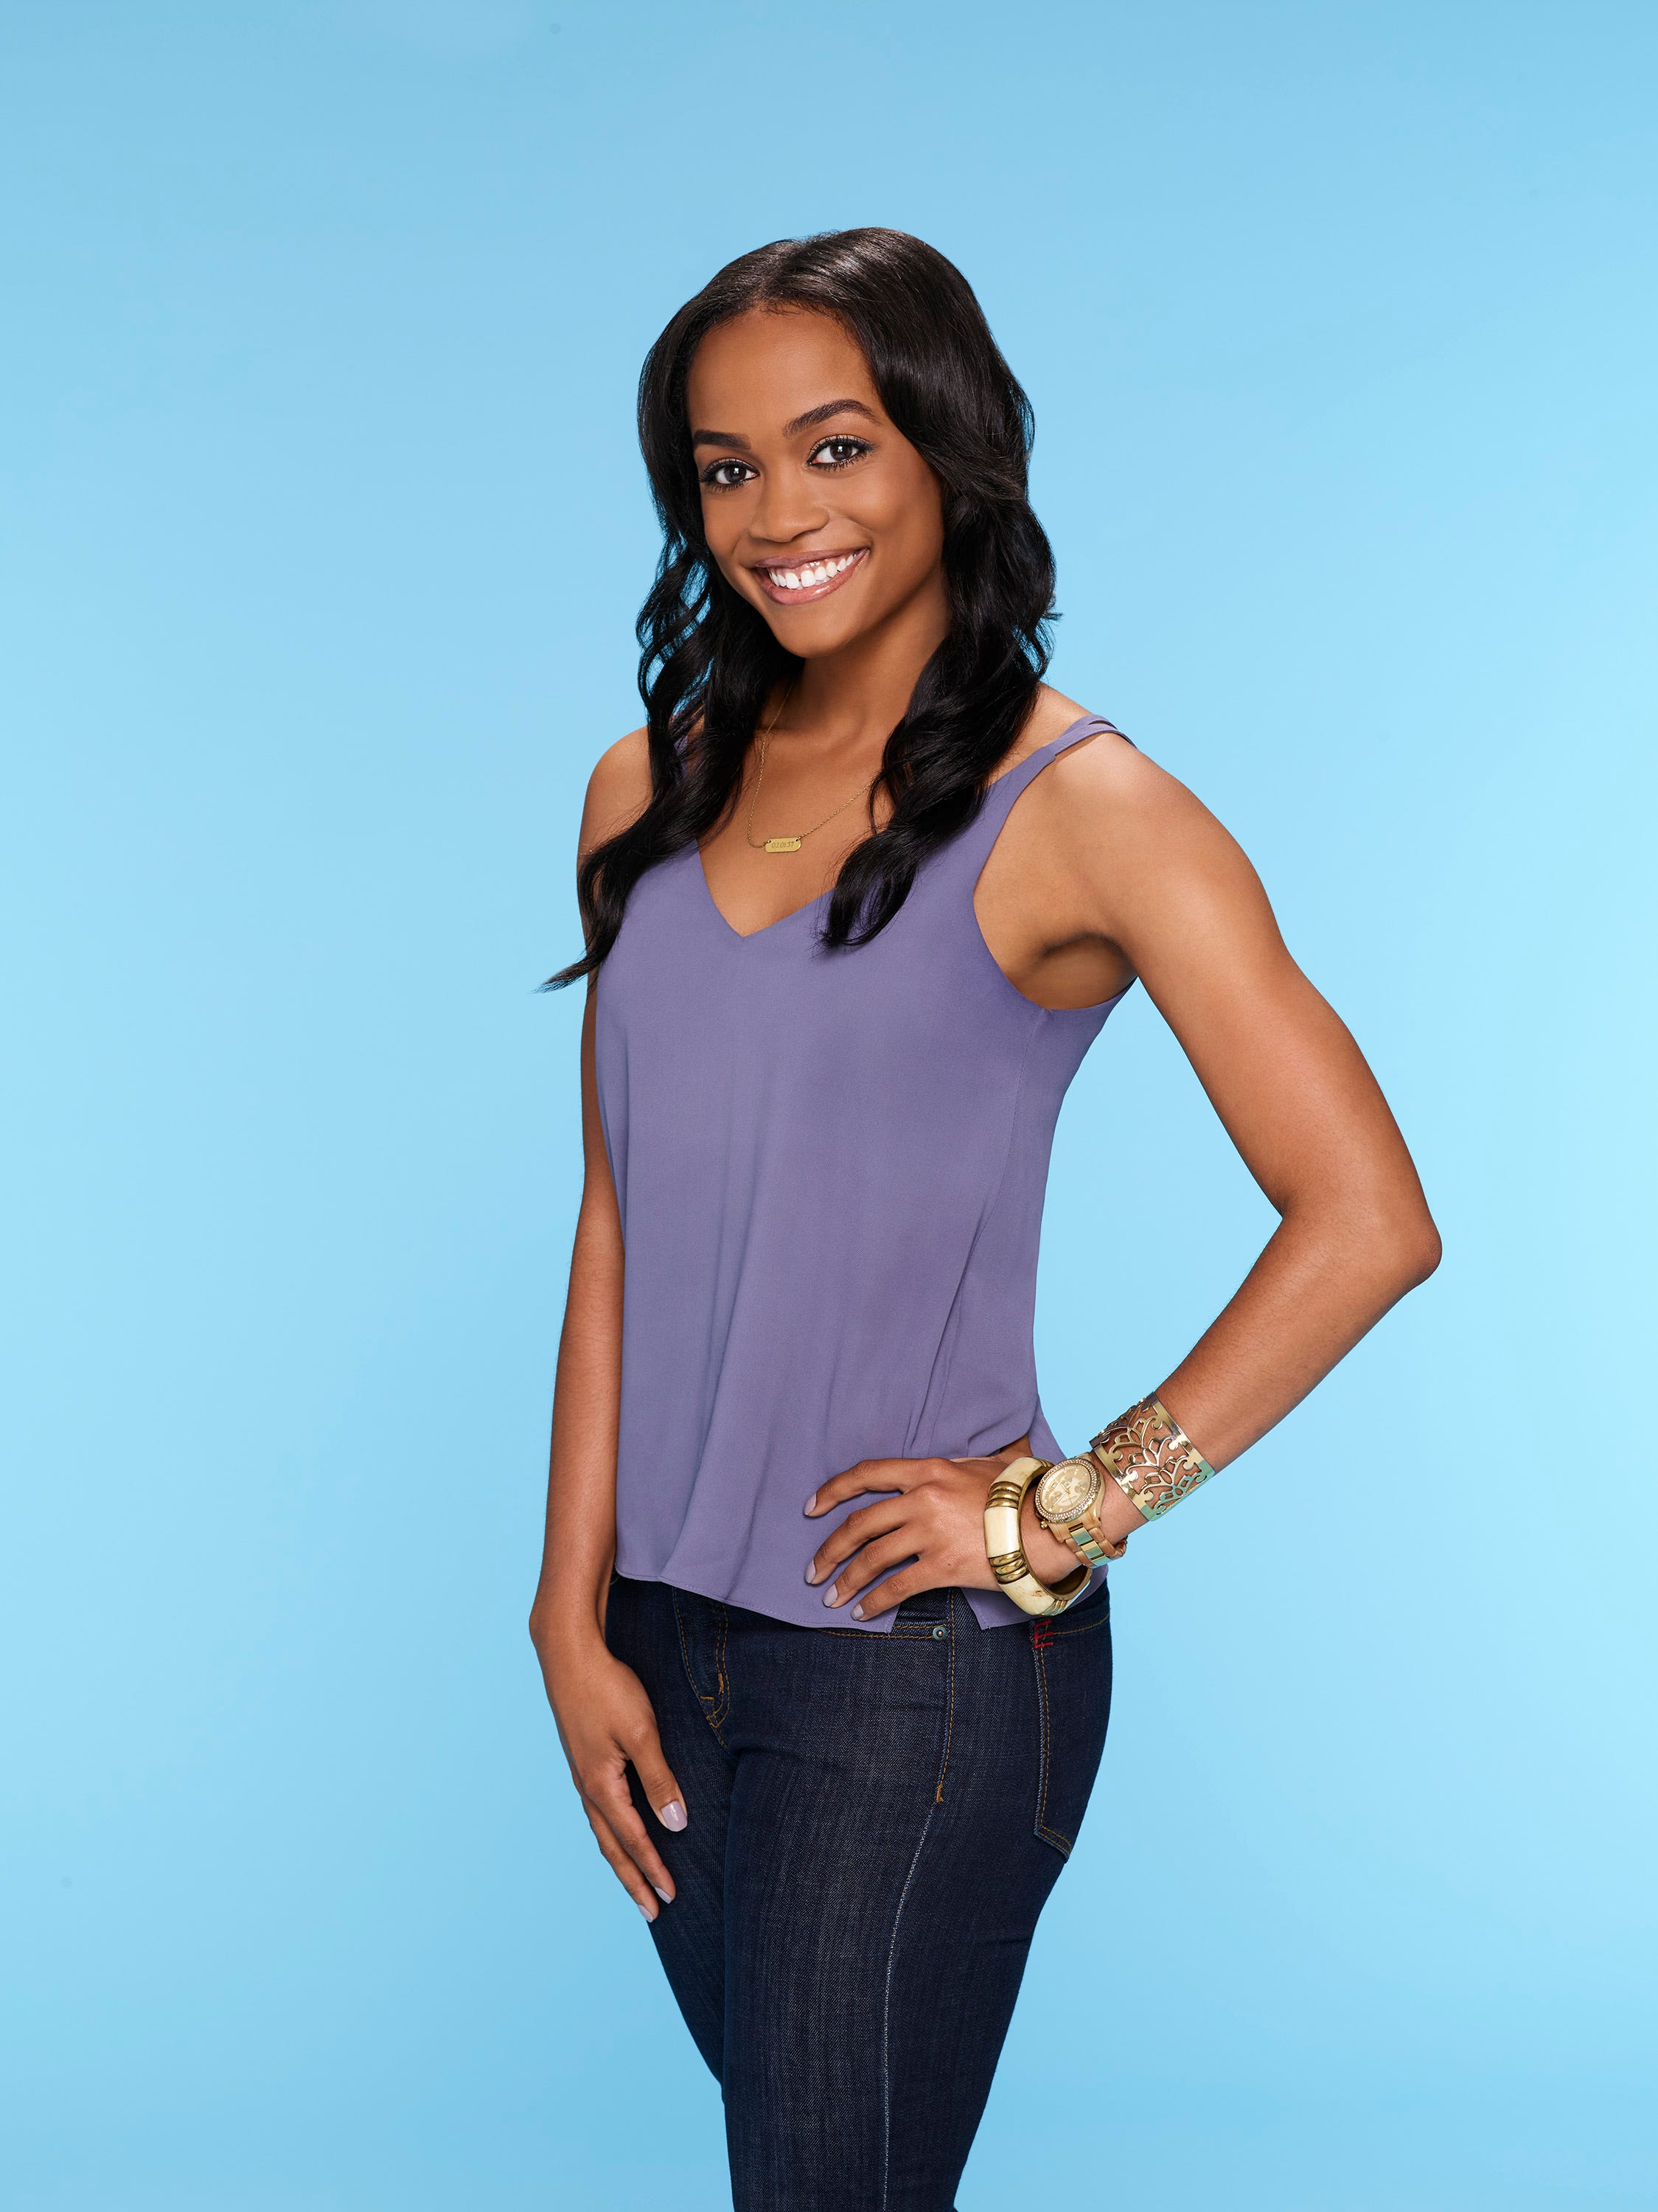 Rachel Lindsay Bachelorette Suitors Who Are They